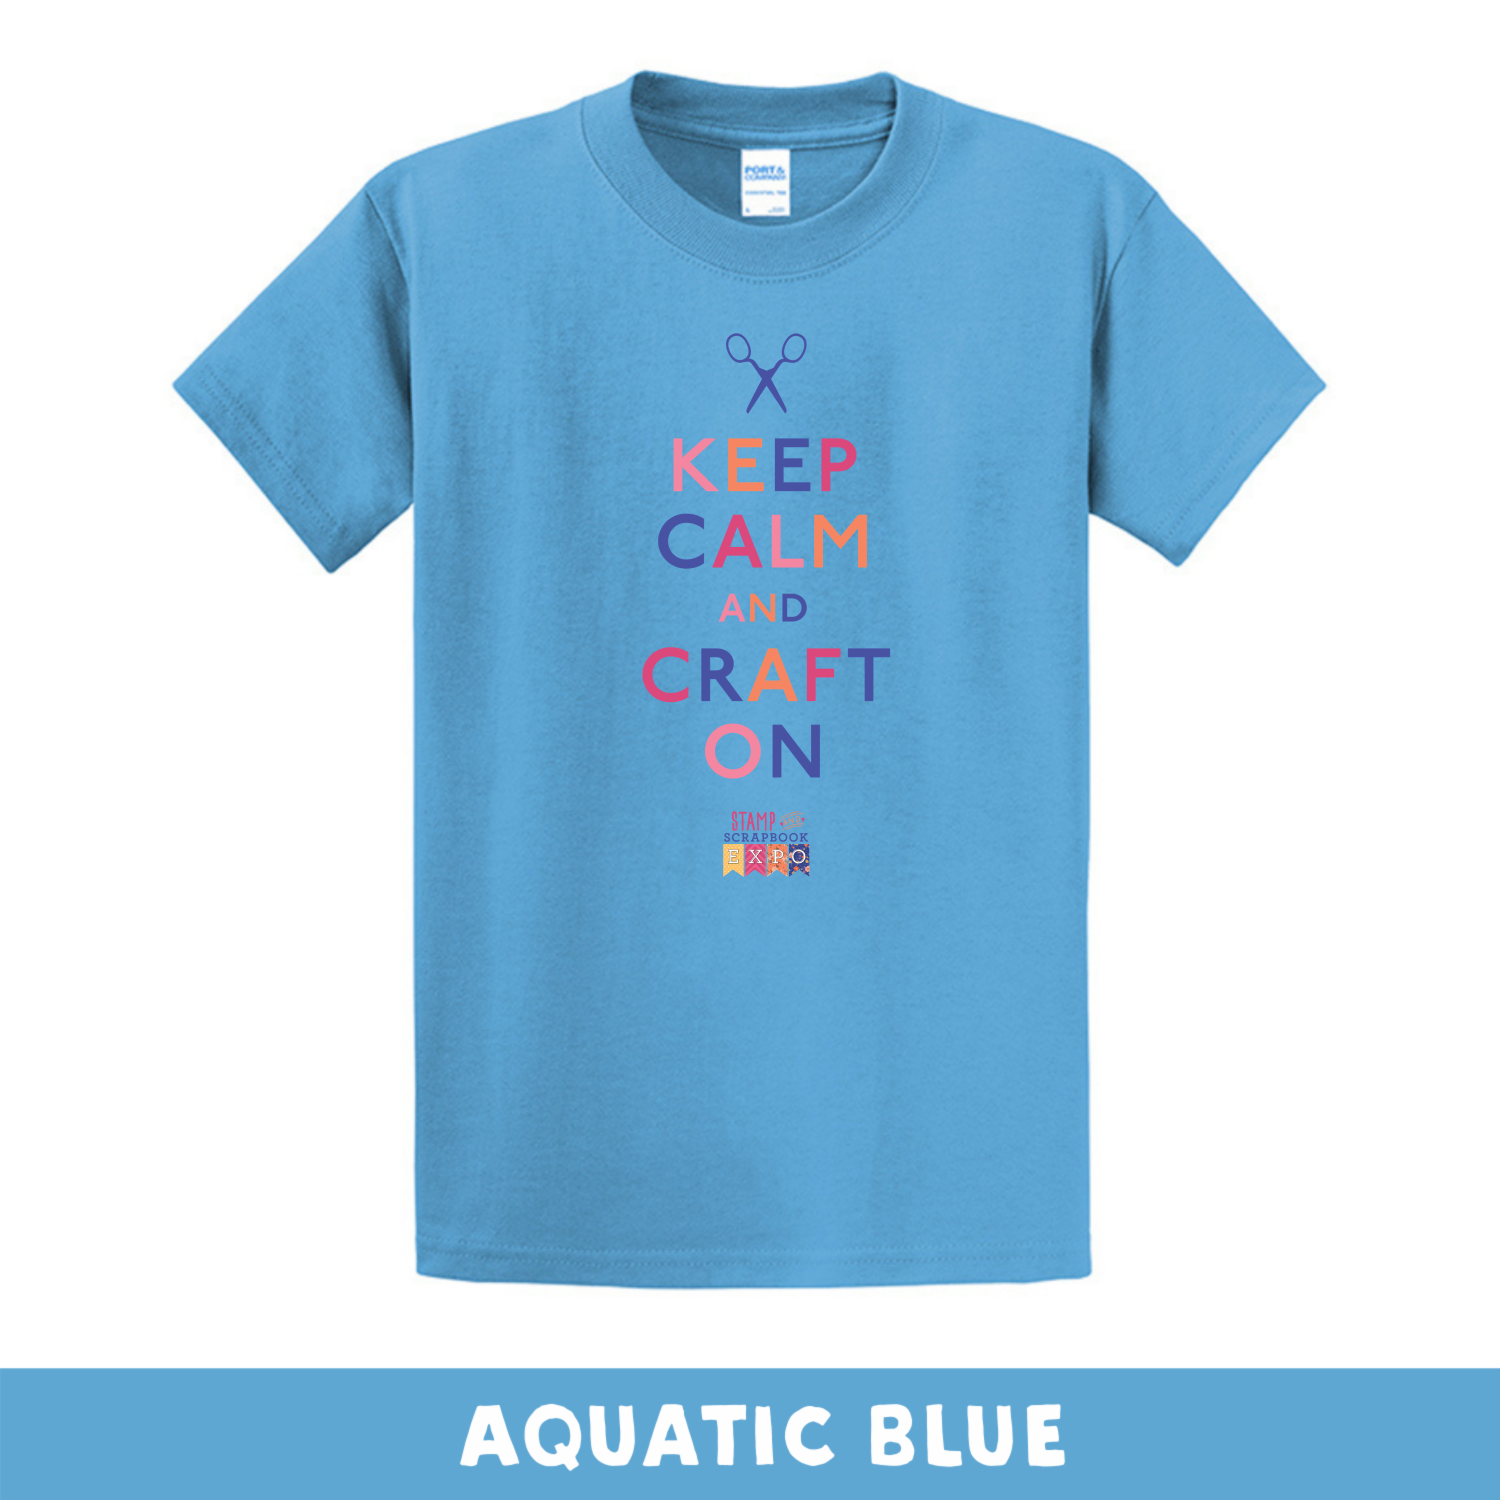 Aquatic Blue - Crew Neck Unisex T-Shirt - Keep Calm & Craft On